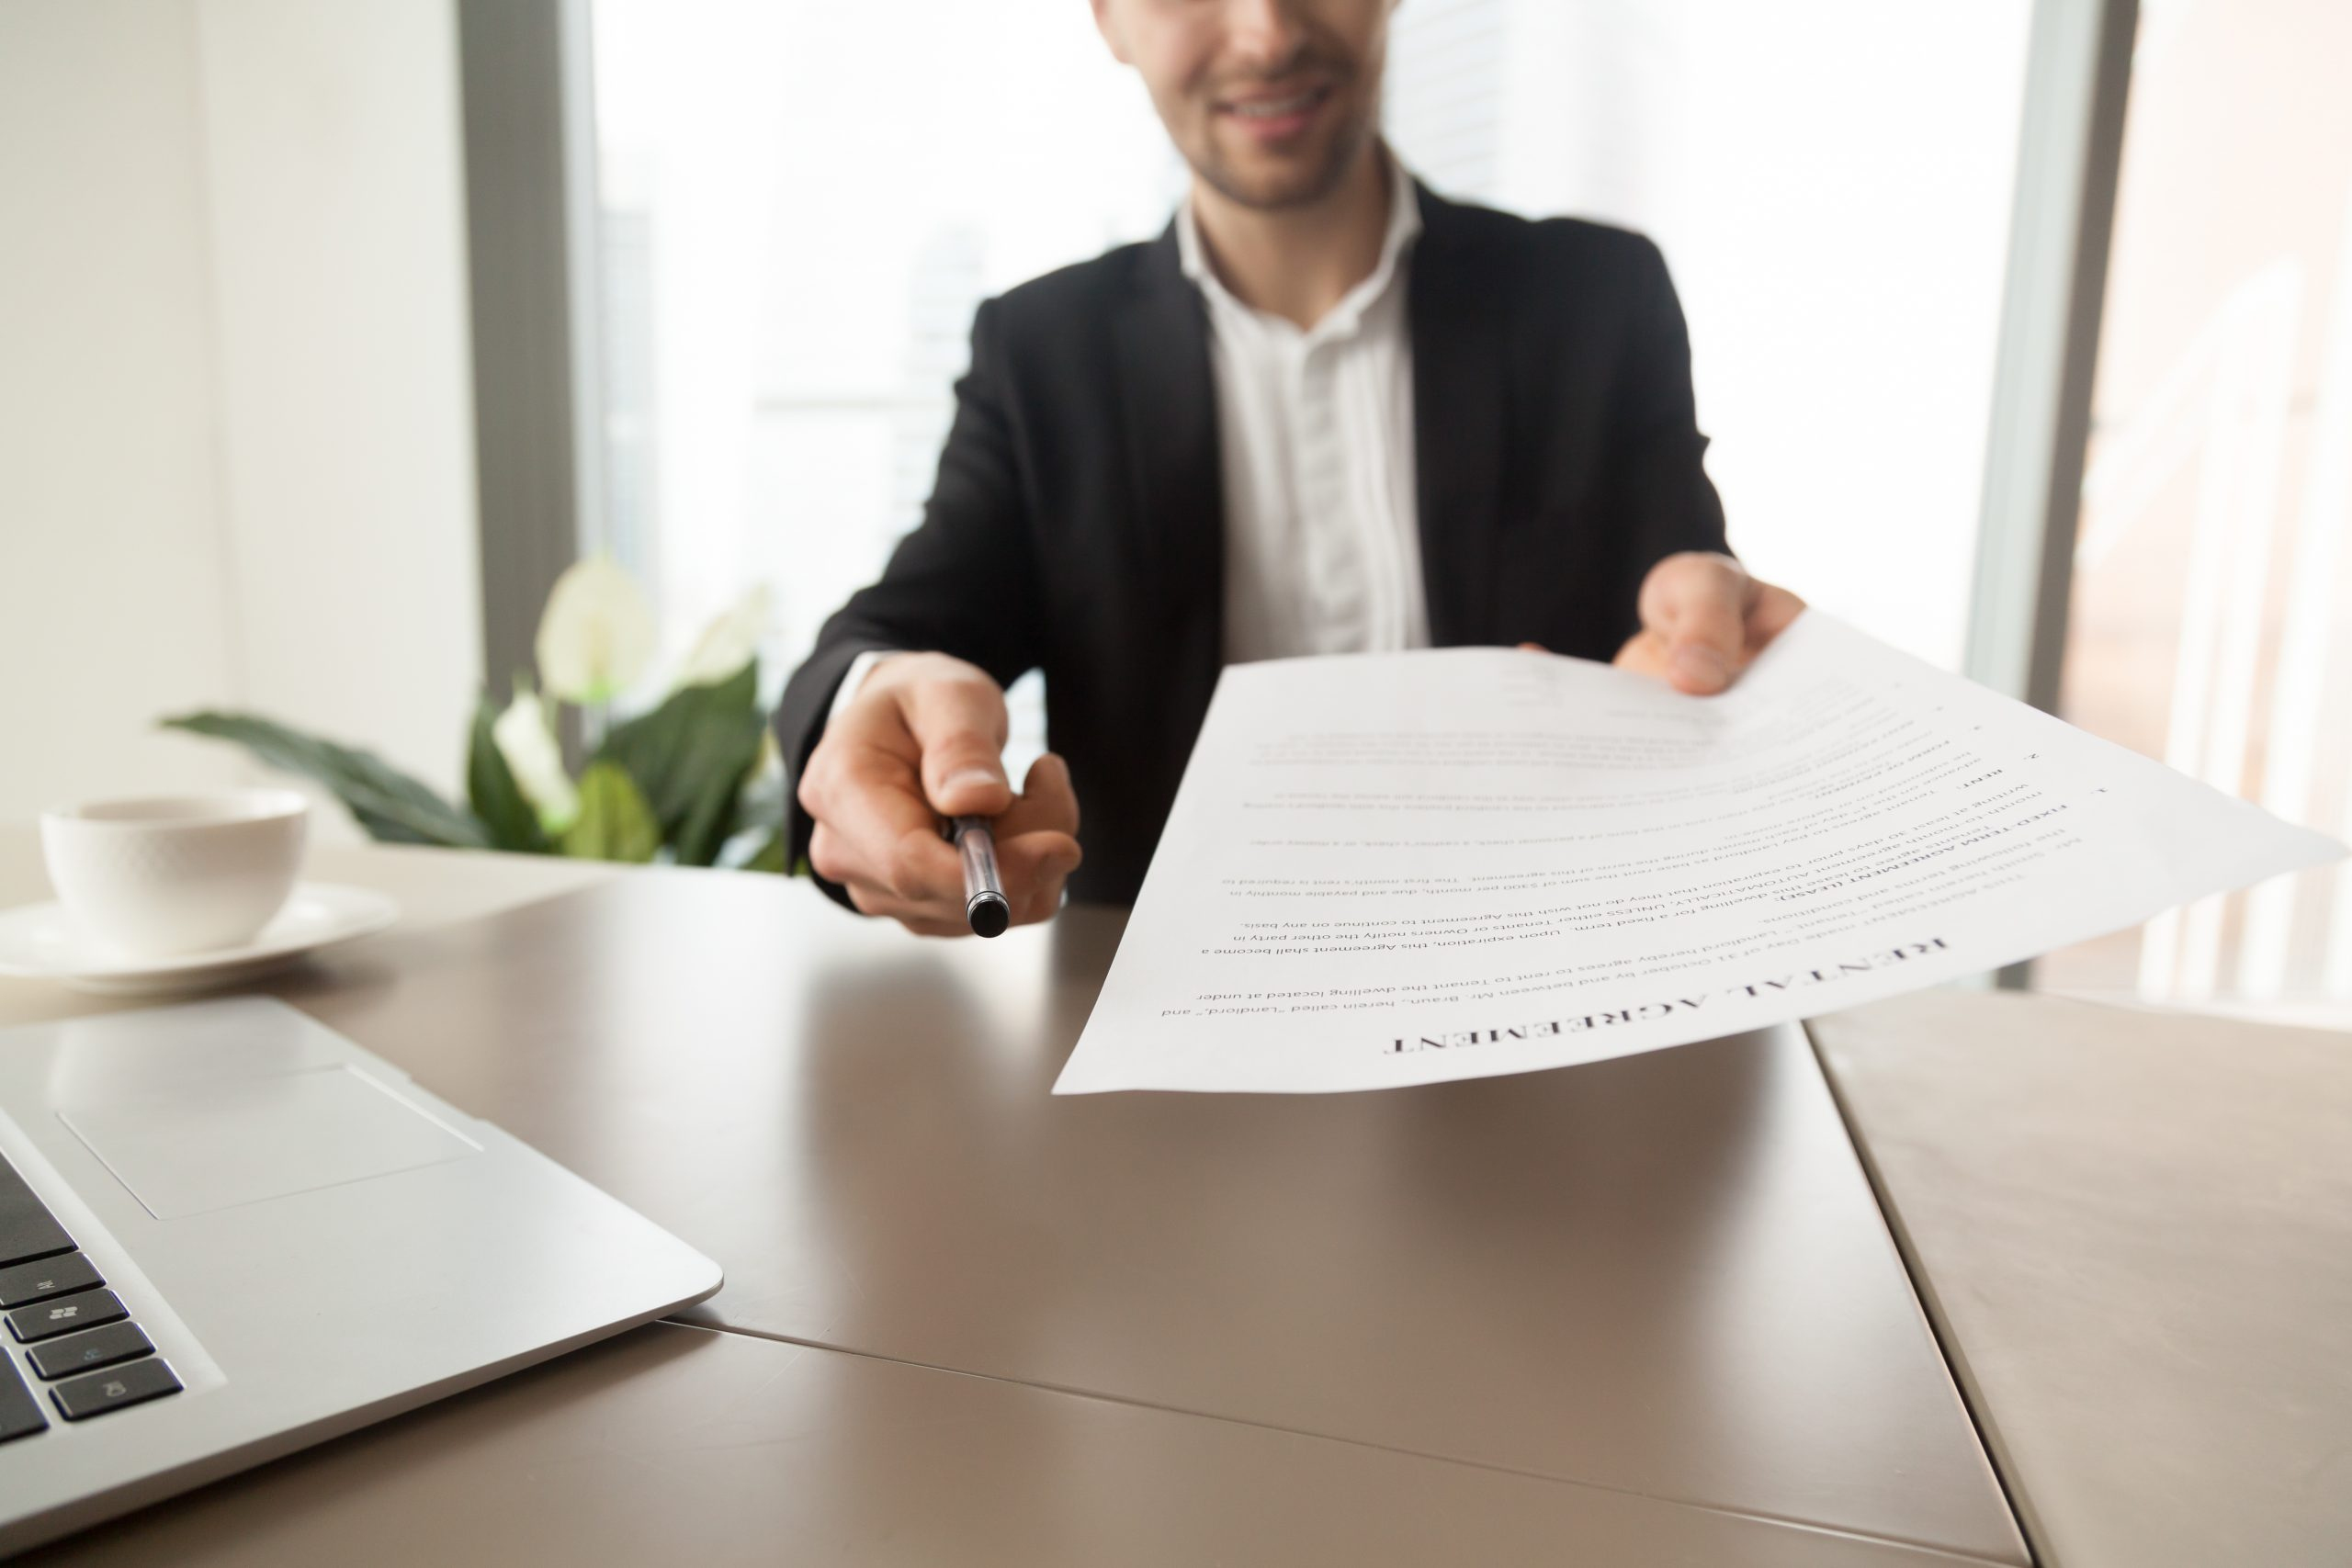 Realtor reaching out pen and rental agreement to clients. Real estate consultant sitting at desk in office and offers to read and sign contract document. Readiness to make a deal, rent new dwelling